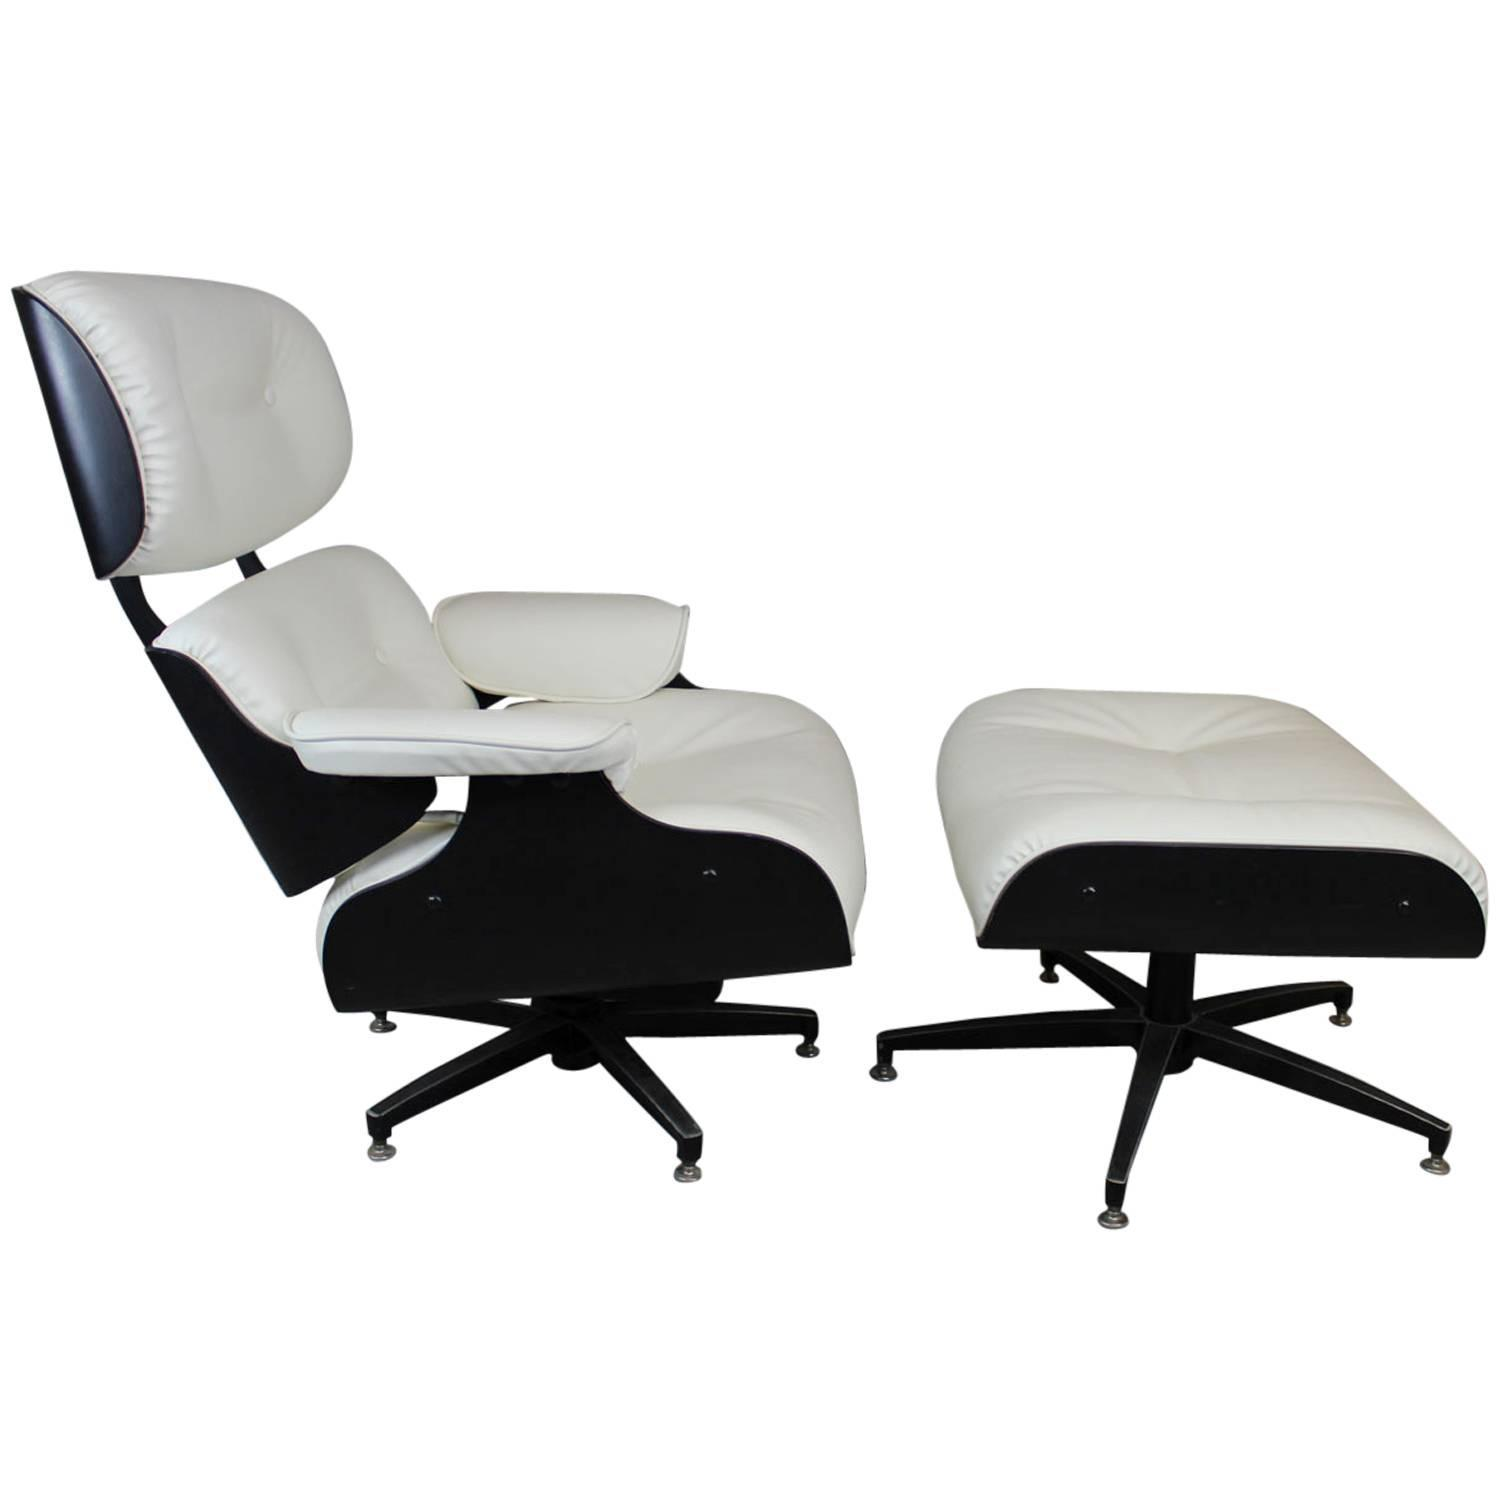 eames style lounge chair and ottoman in black and ivory for sale at 1stdibs. Black Bedroom Furniture Sets. Home Design Ideas